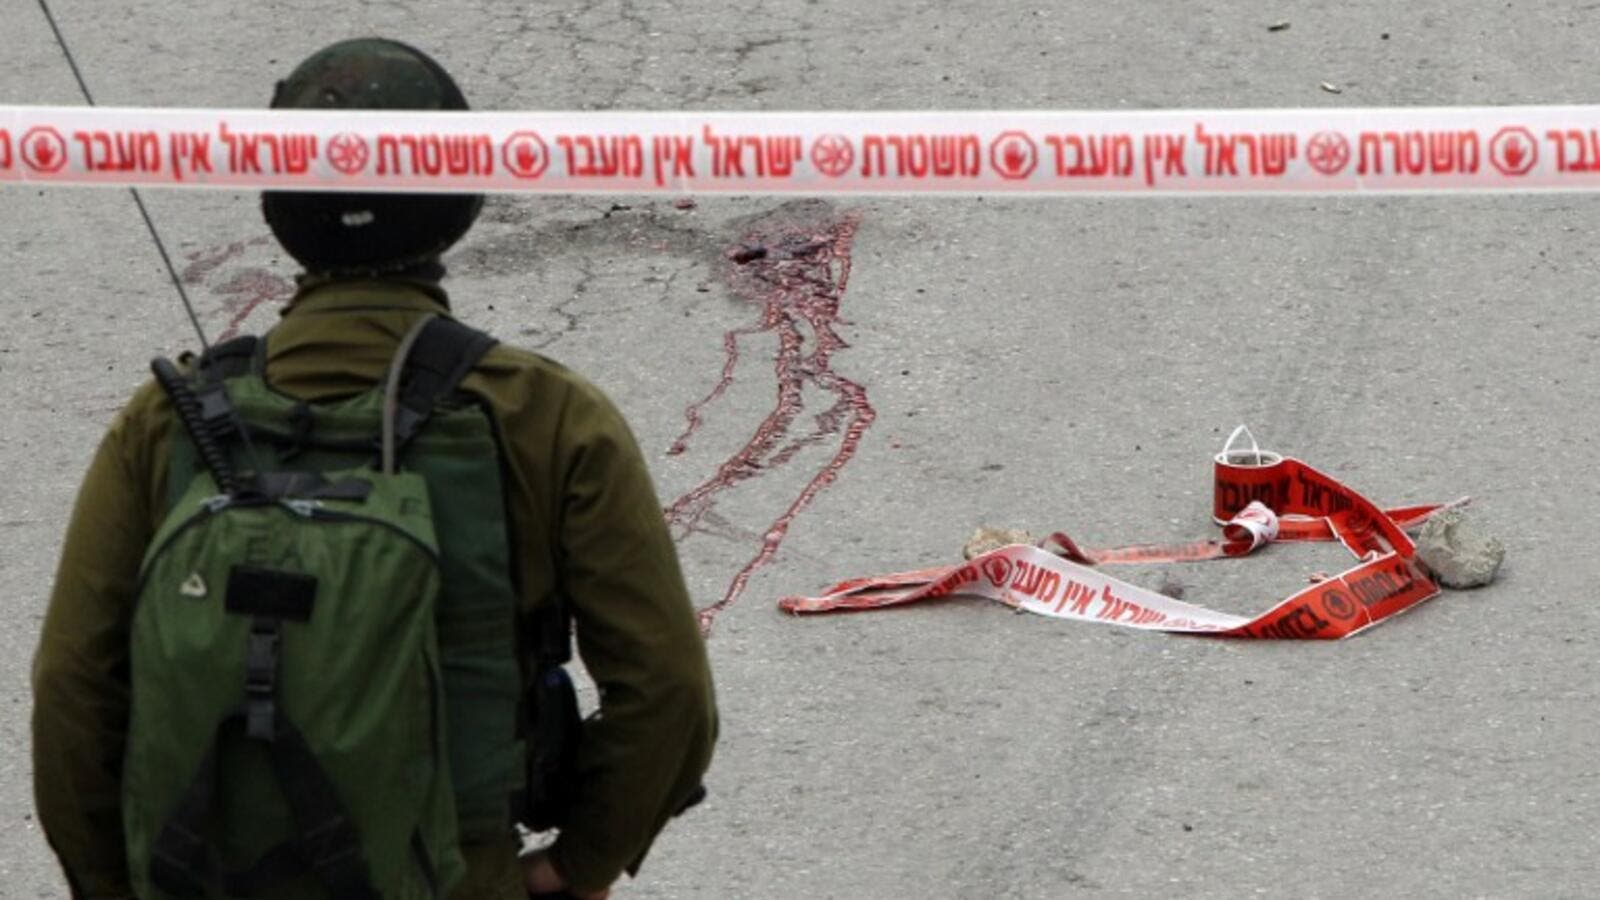 Blood stains from the body of a Palestinian assailant who was allegedly shot in the head by an Israeli soldier as he lay wounded on the ground after injuring an Israeli soldier with a fellow Palestinian attacker in a stabbing assault, stain the ground on March 24, 2016. (AFP/Hazem Bader)